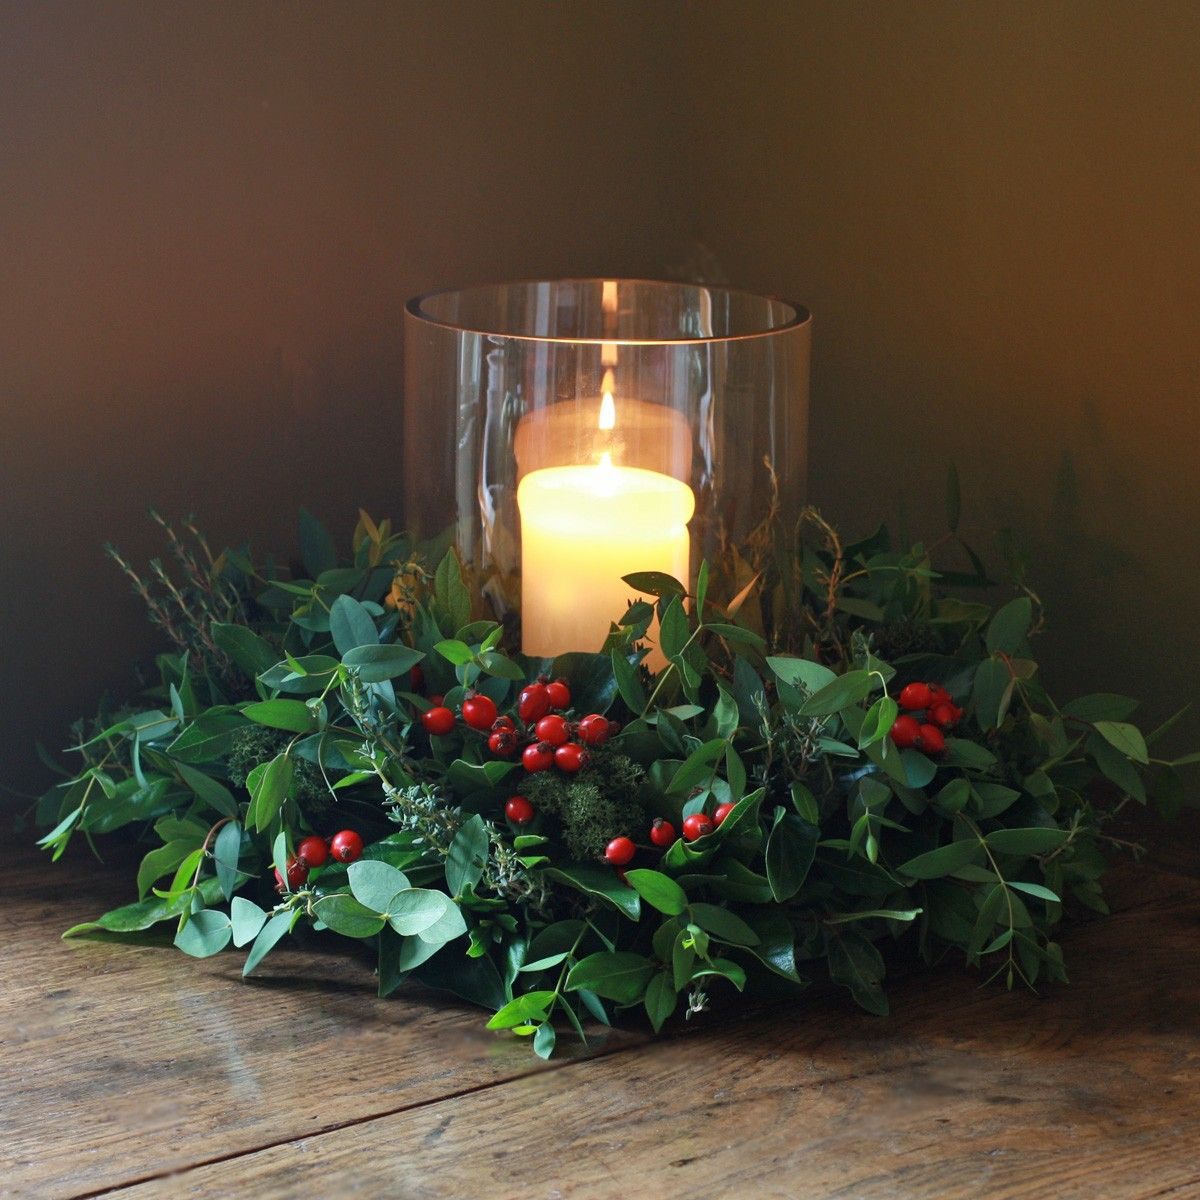 Christmas Rose Hips, Herbs And Foliage Table Wreath Http